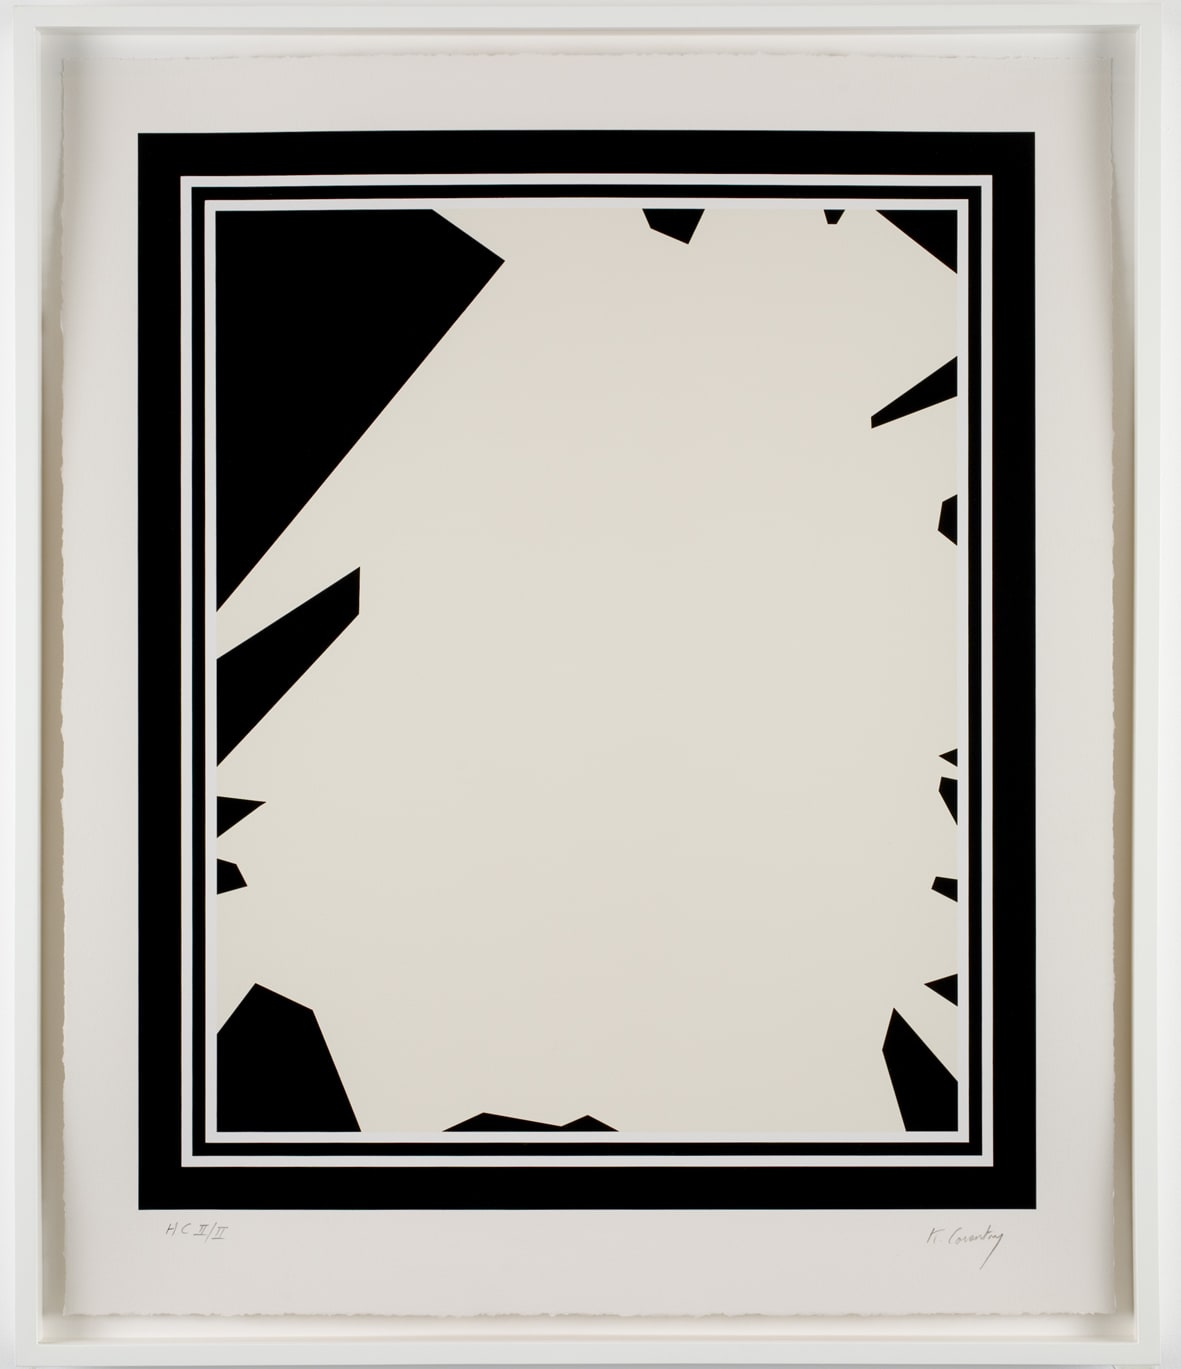 Keith Coventry Broken Window I, 2008 Silkscreen on Arches 410gsm Signed and numbered 71.4 x 59 cm Edition of 50